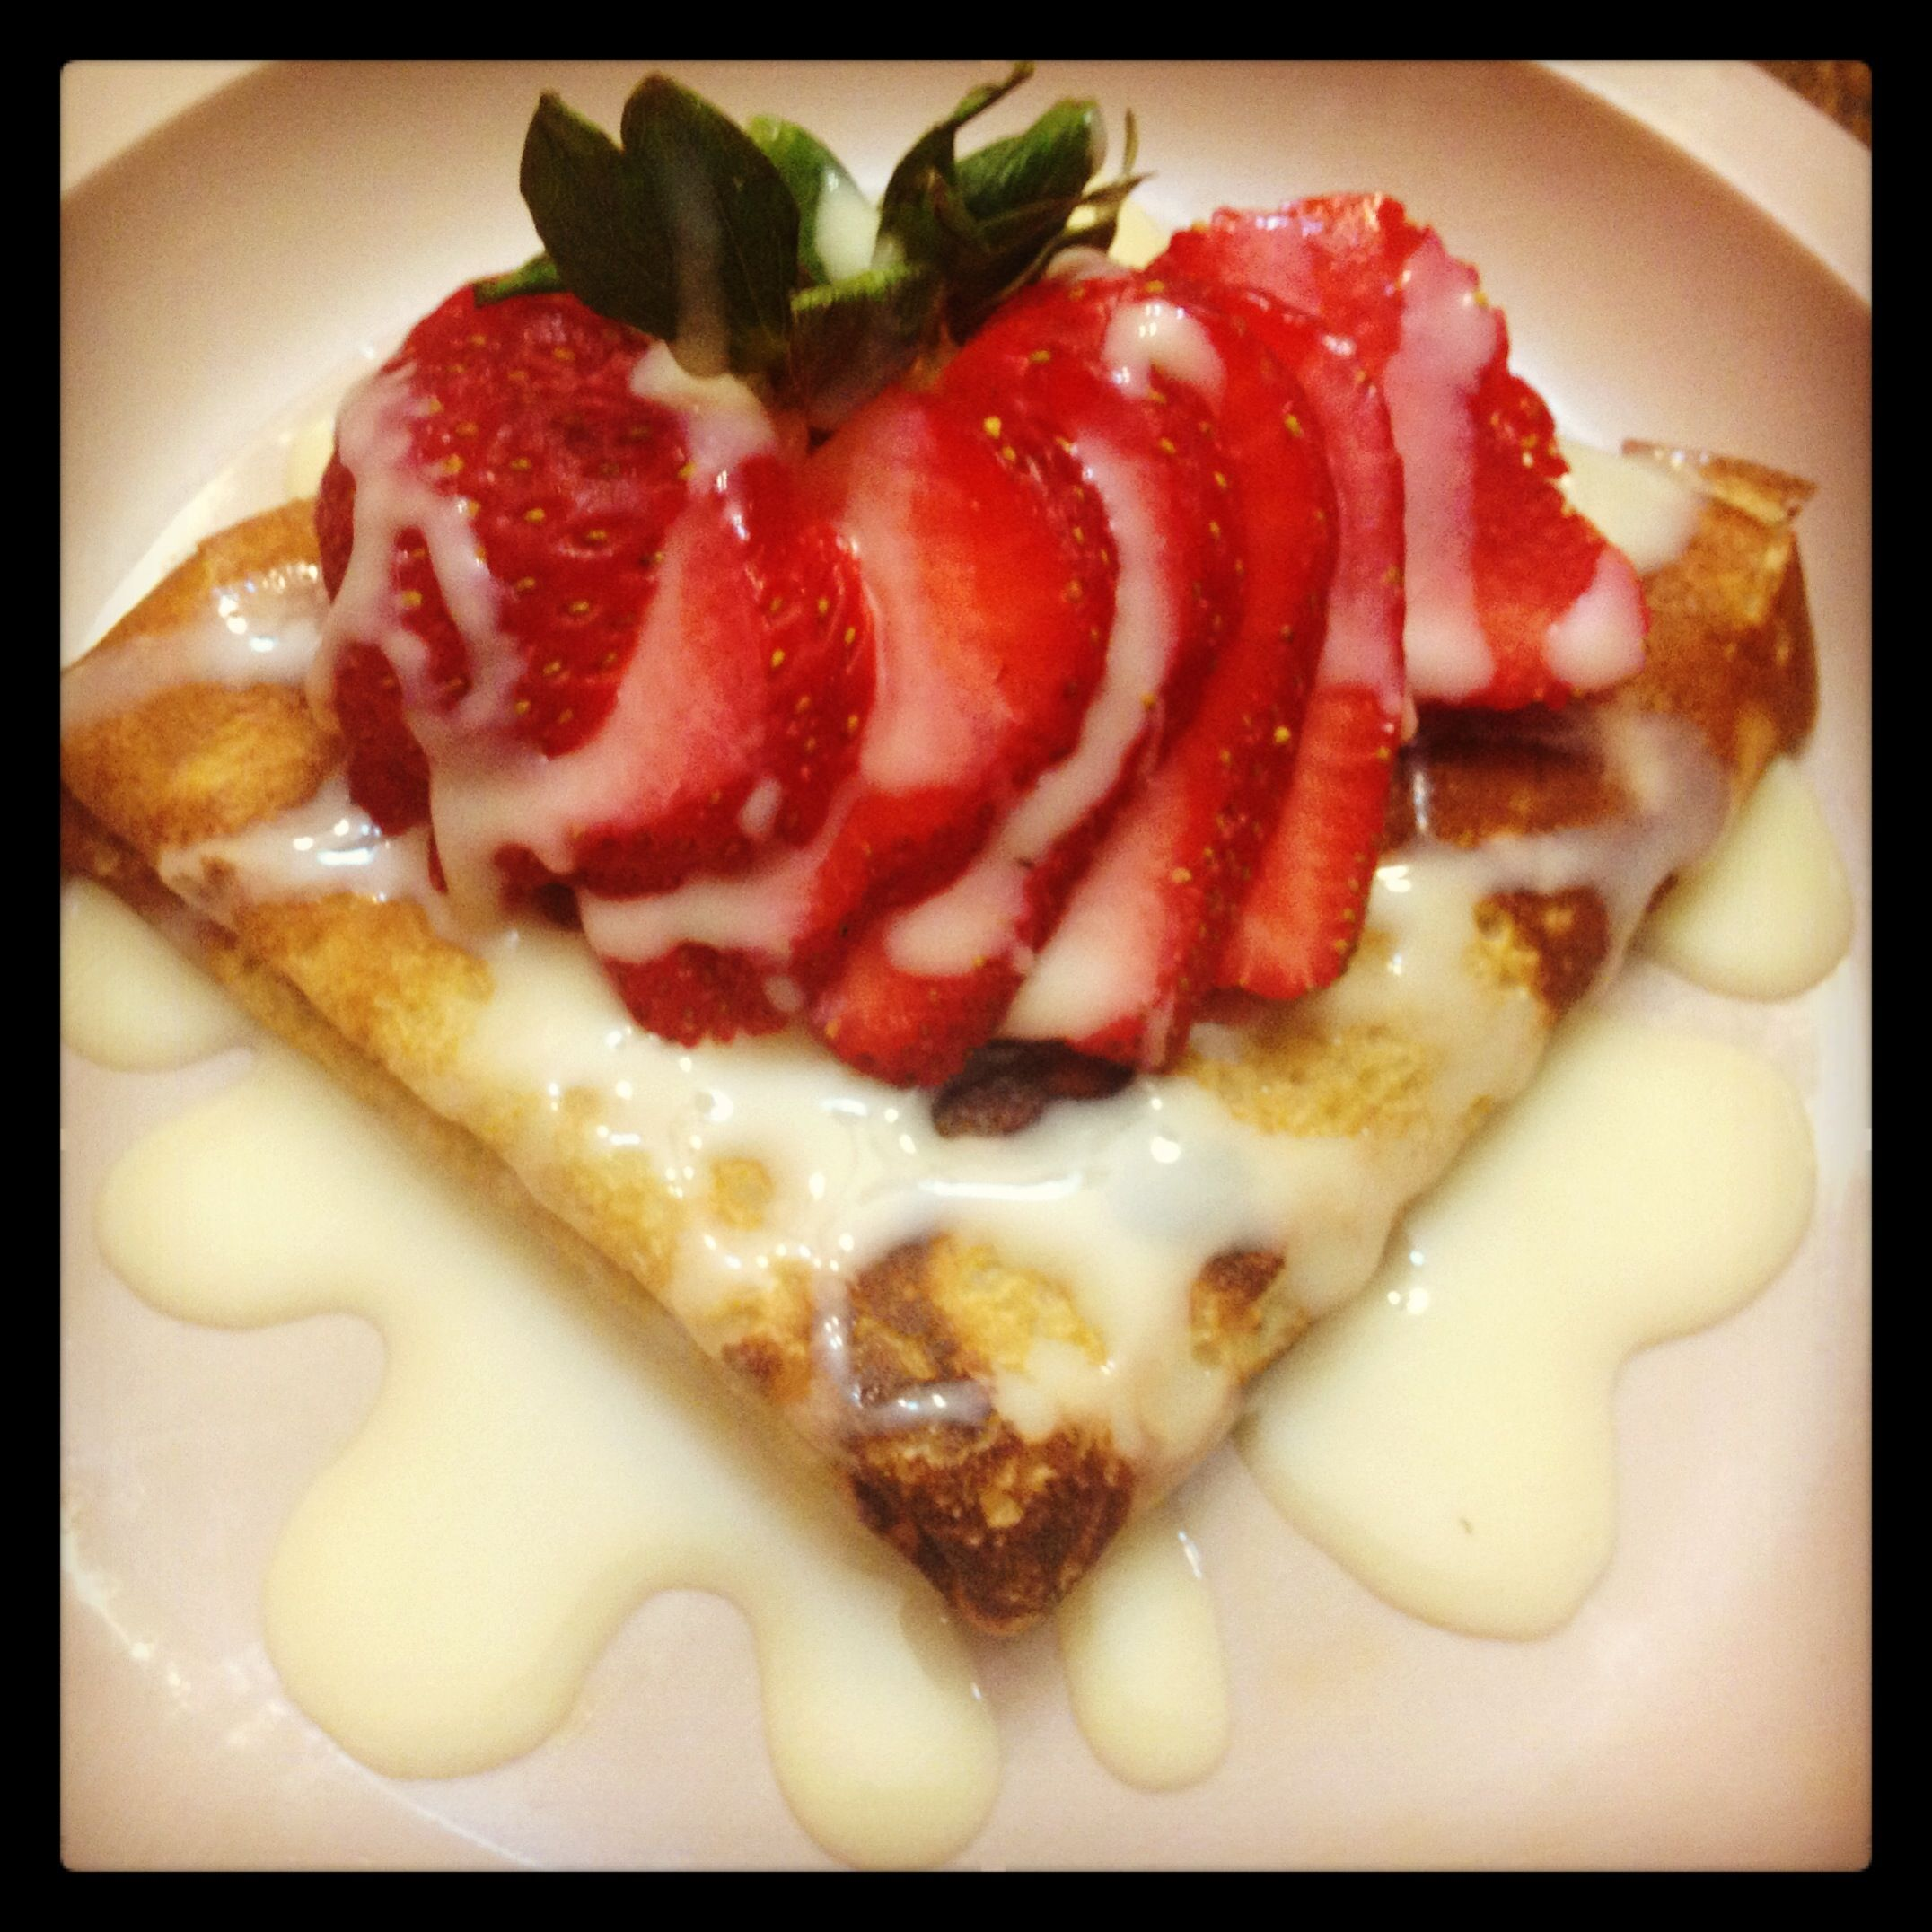 Photo of Crepes with La Lechera y fresas Crepes with condensed milk and strawberries.